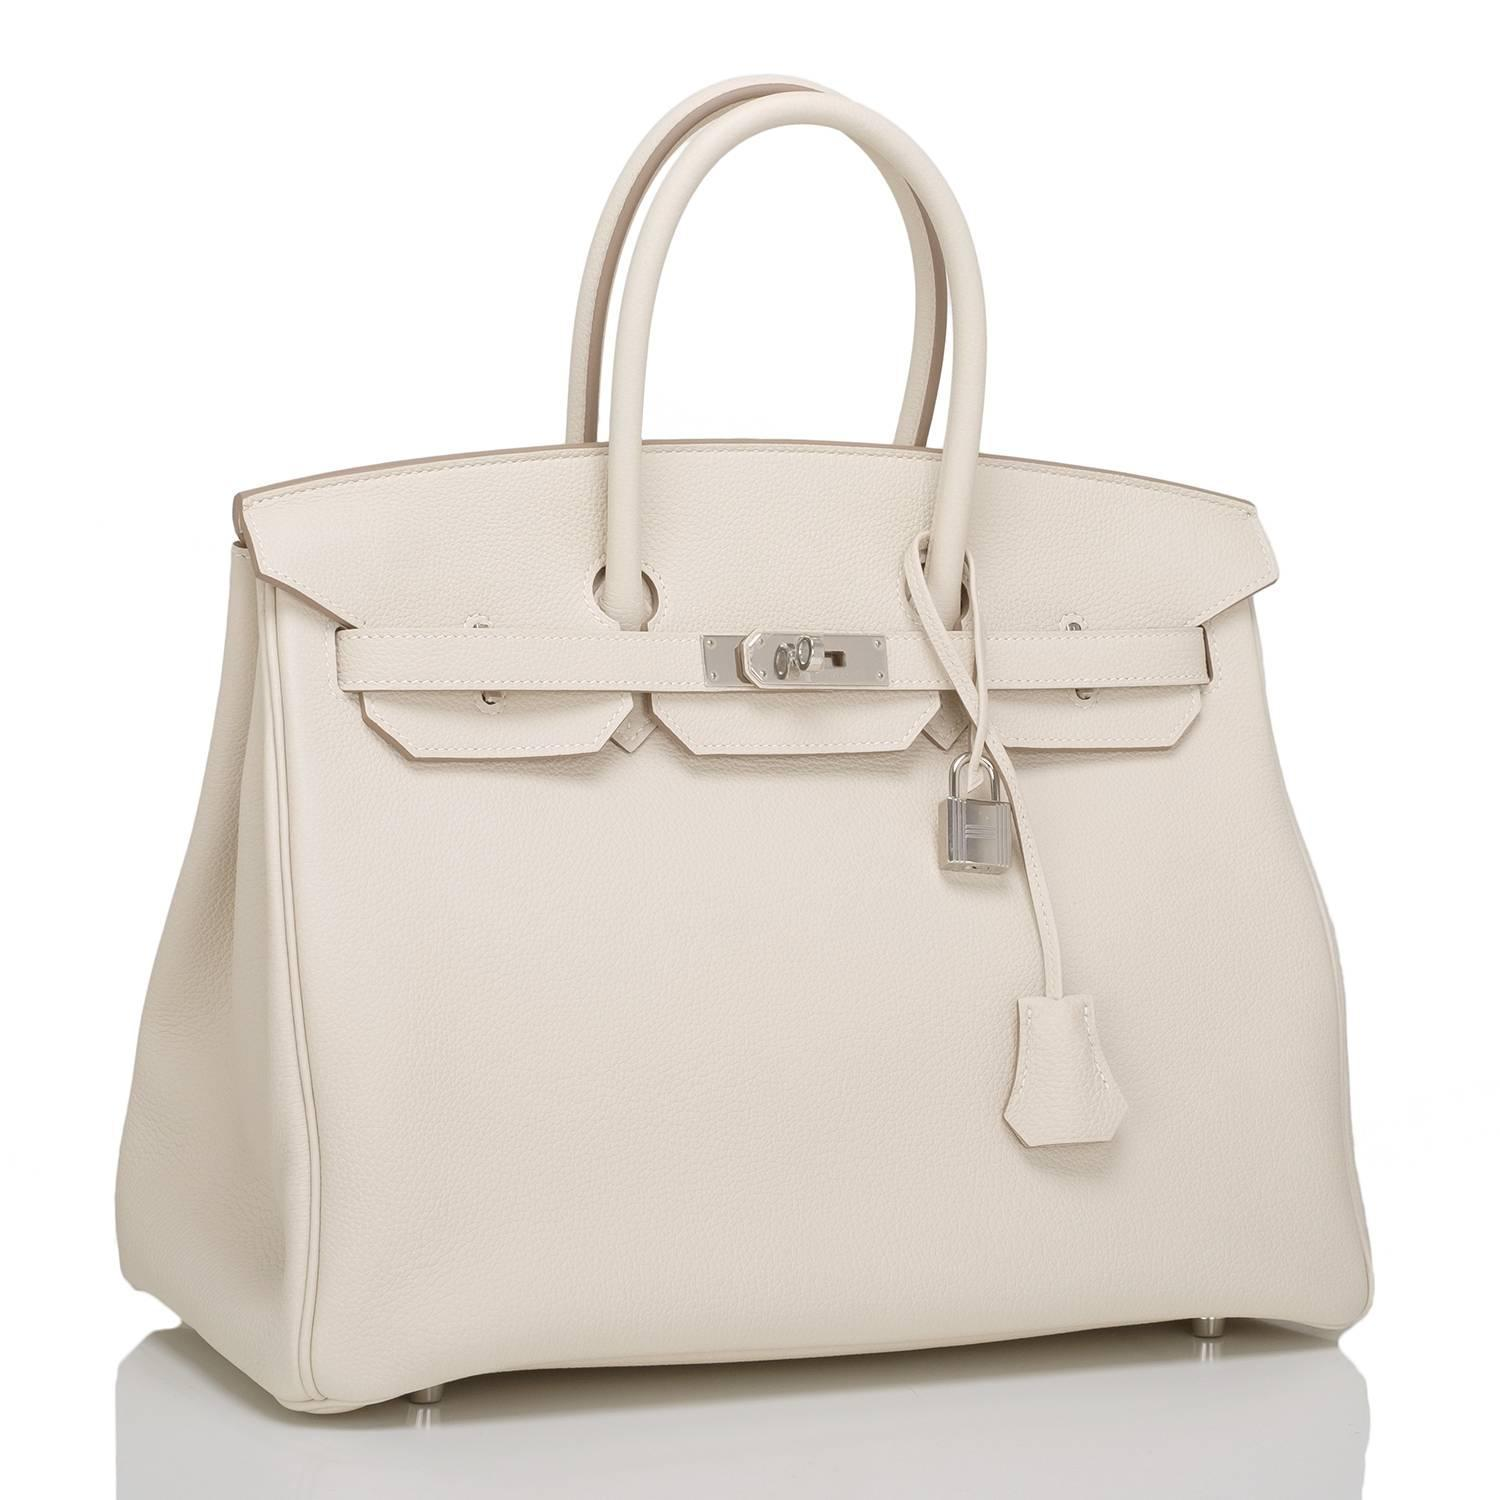 birkins handbags - Hermes Craie Togo Birkin 35cm Palladium Hardware For Sale at 1stdibs